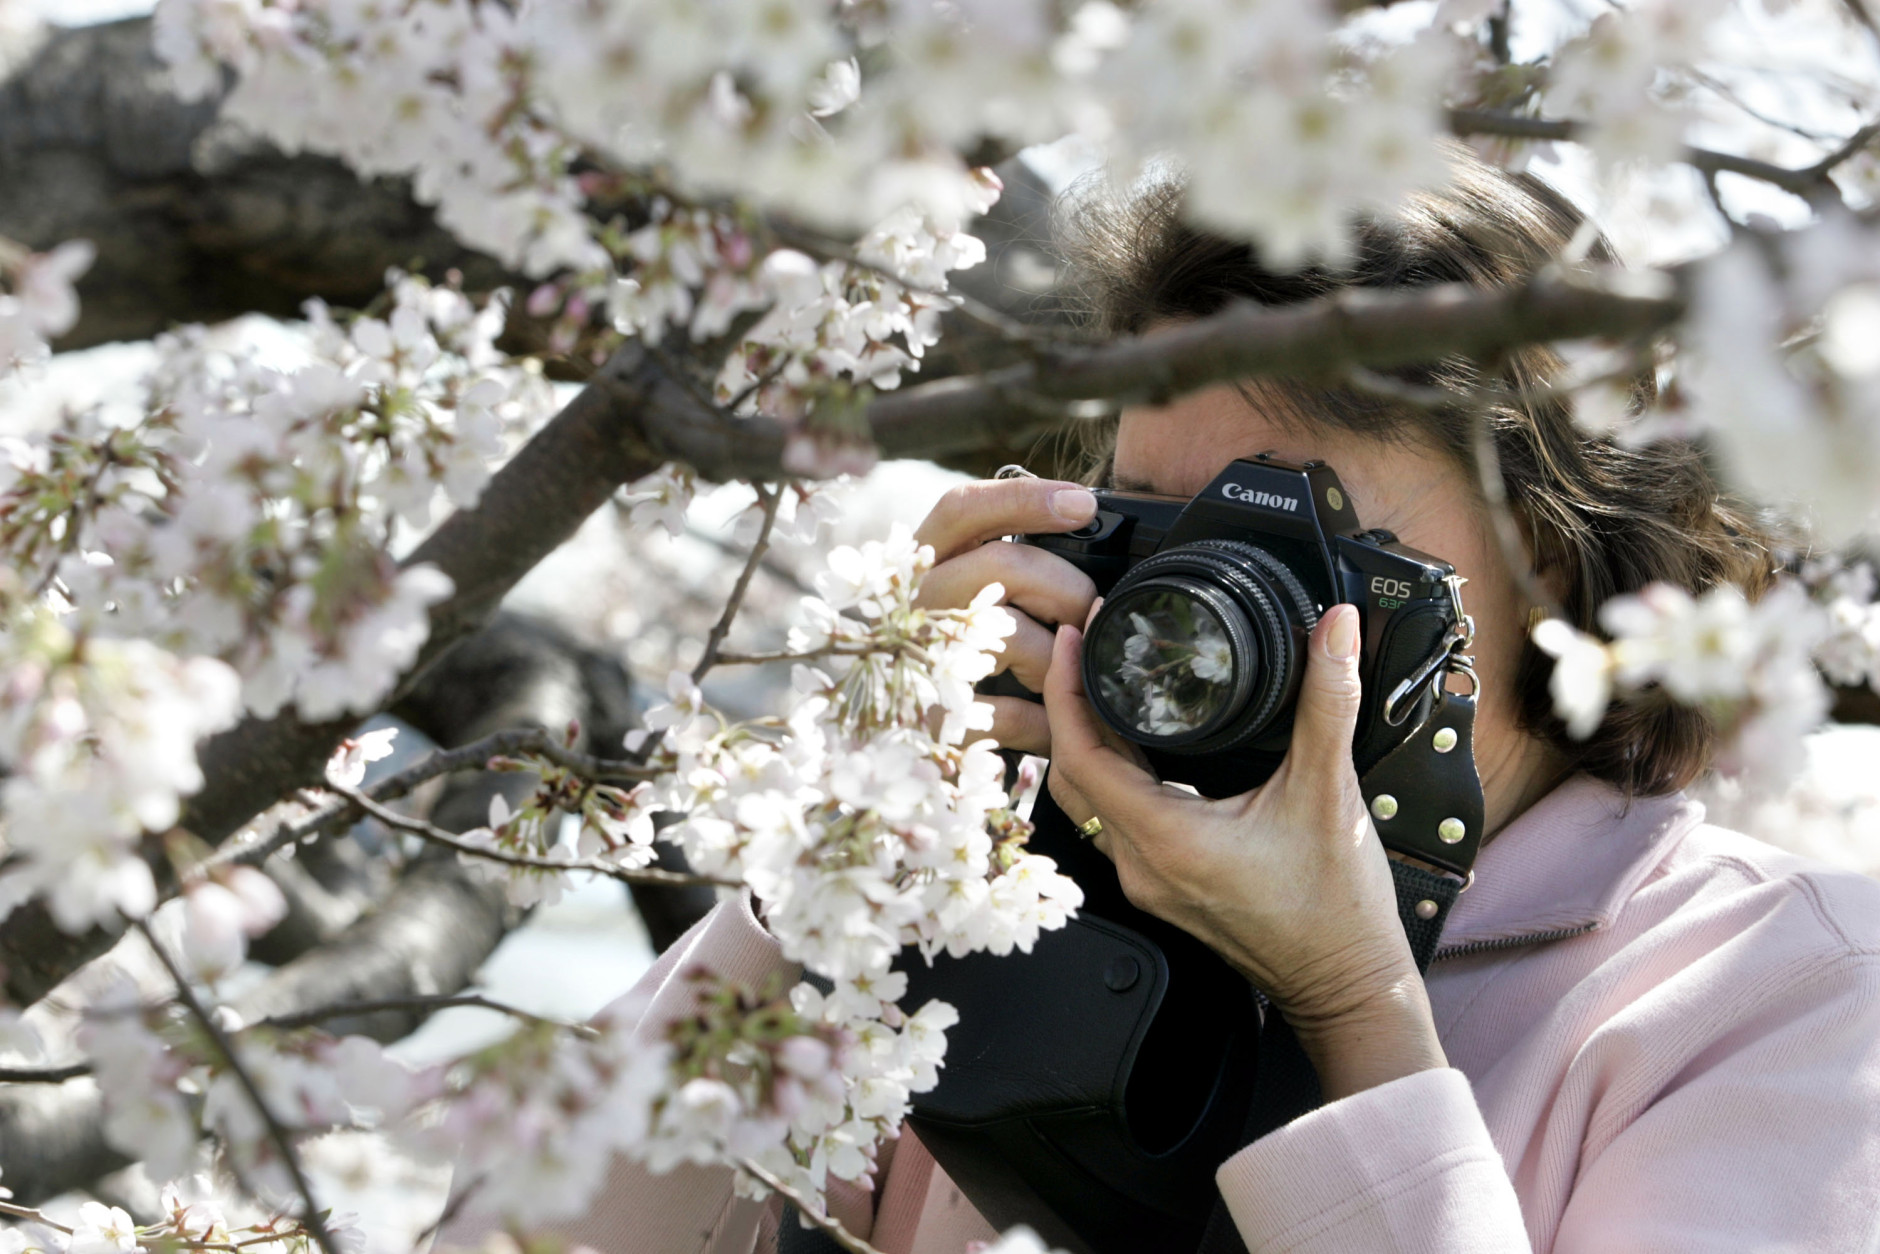 WASHINGTON - APRIL 5: Rosario Ponte, of Alexandria, Virginia photographs the cherry tree blossoms that circle the Tidal Basin as the trees began to bloom April 5, 2005 in Washington. The National Cherry Blossom Festival -- a celebration to commemorate the 1912 gift of 3,000 Yoshino cherry trees from Japan -- will run until April 10. Originally from Venezuela, Ponte has been photographing the annual bloom for the past 30 years. She said it is her dream to be good enough to shoot photos for the National Geographic magazine. (Photo by Chip Somodevilla/Getty Images)